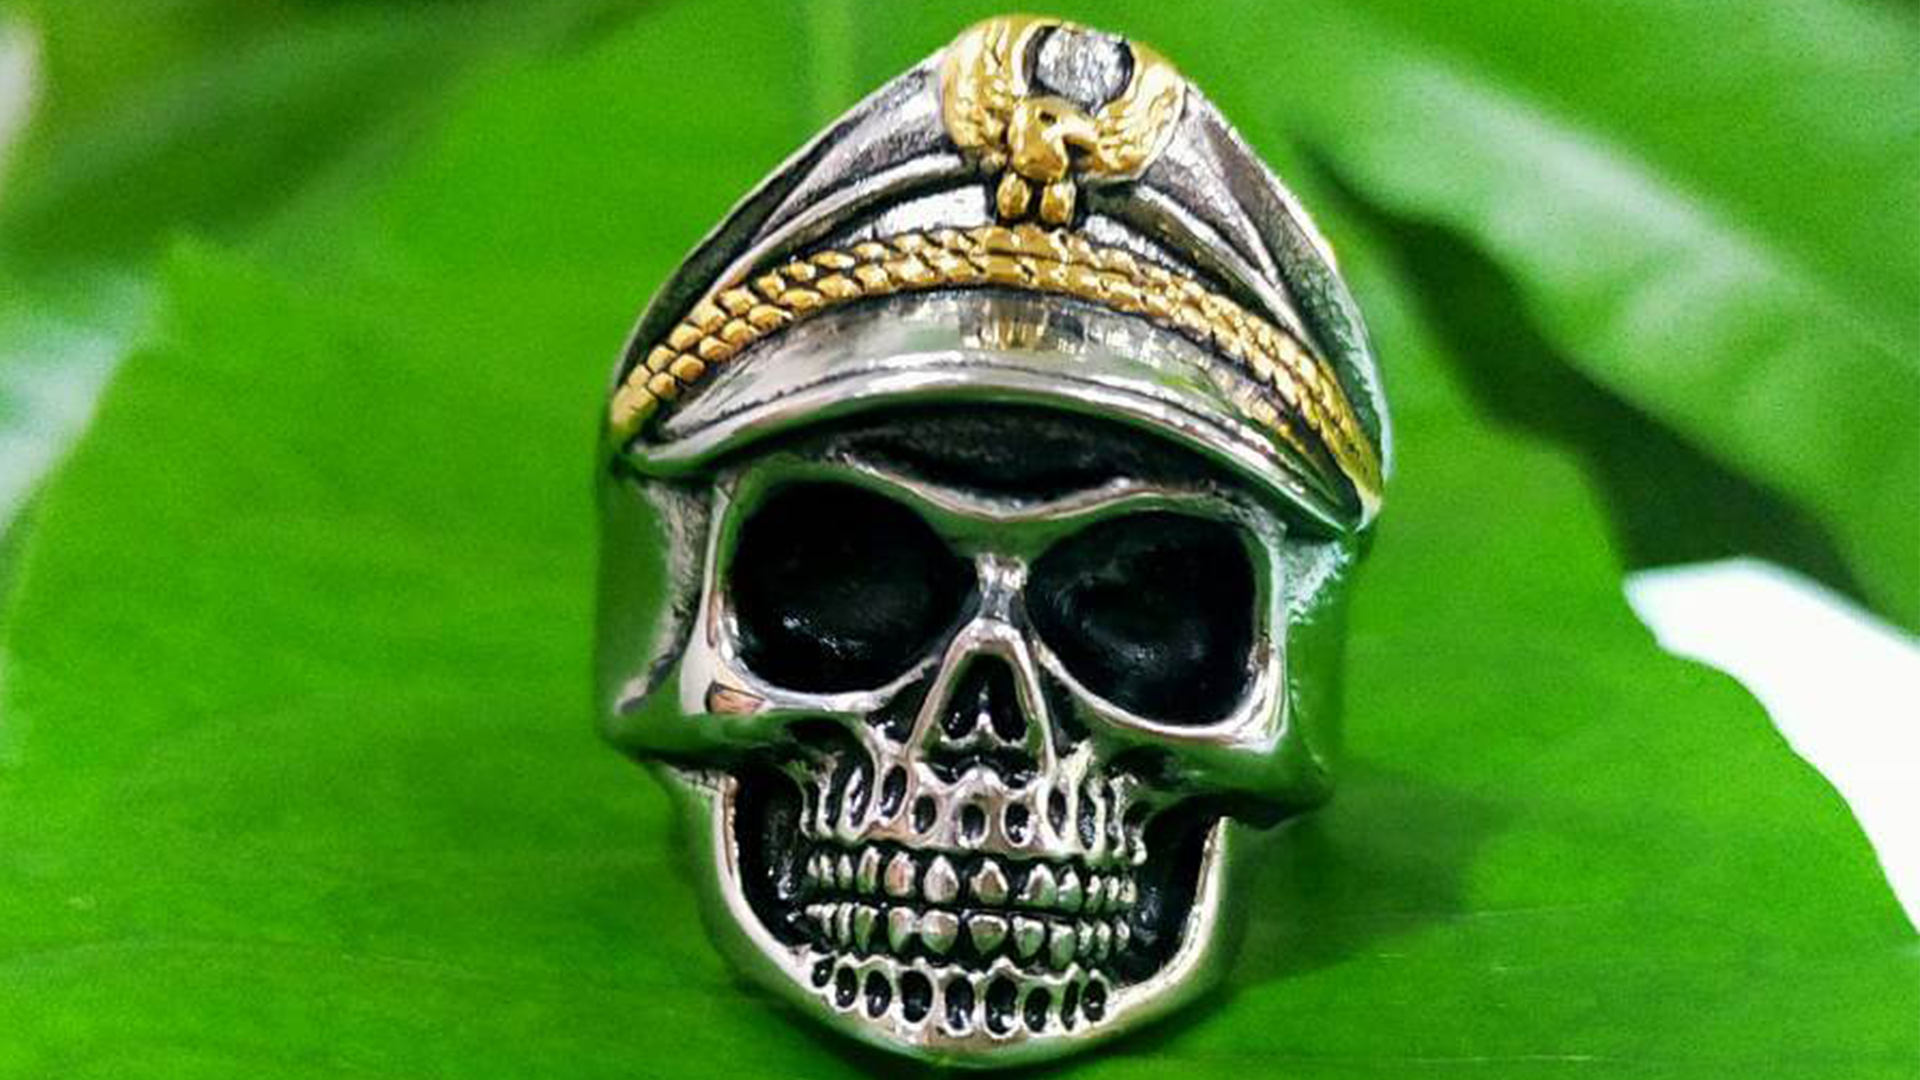 Personalized Skull rings for men and women, life gift(3) 20210219